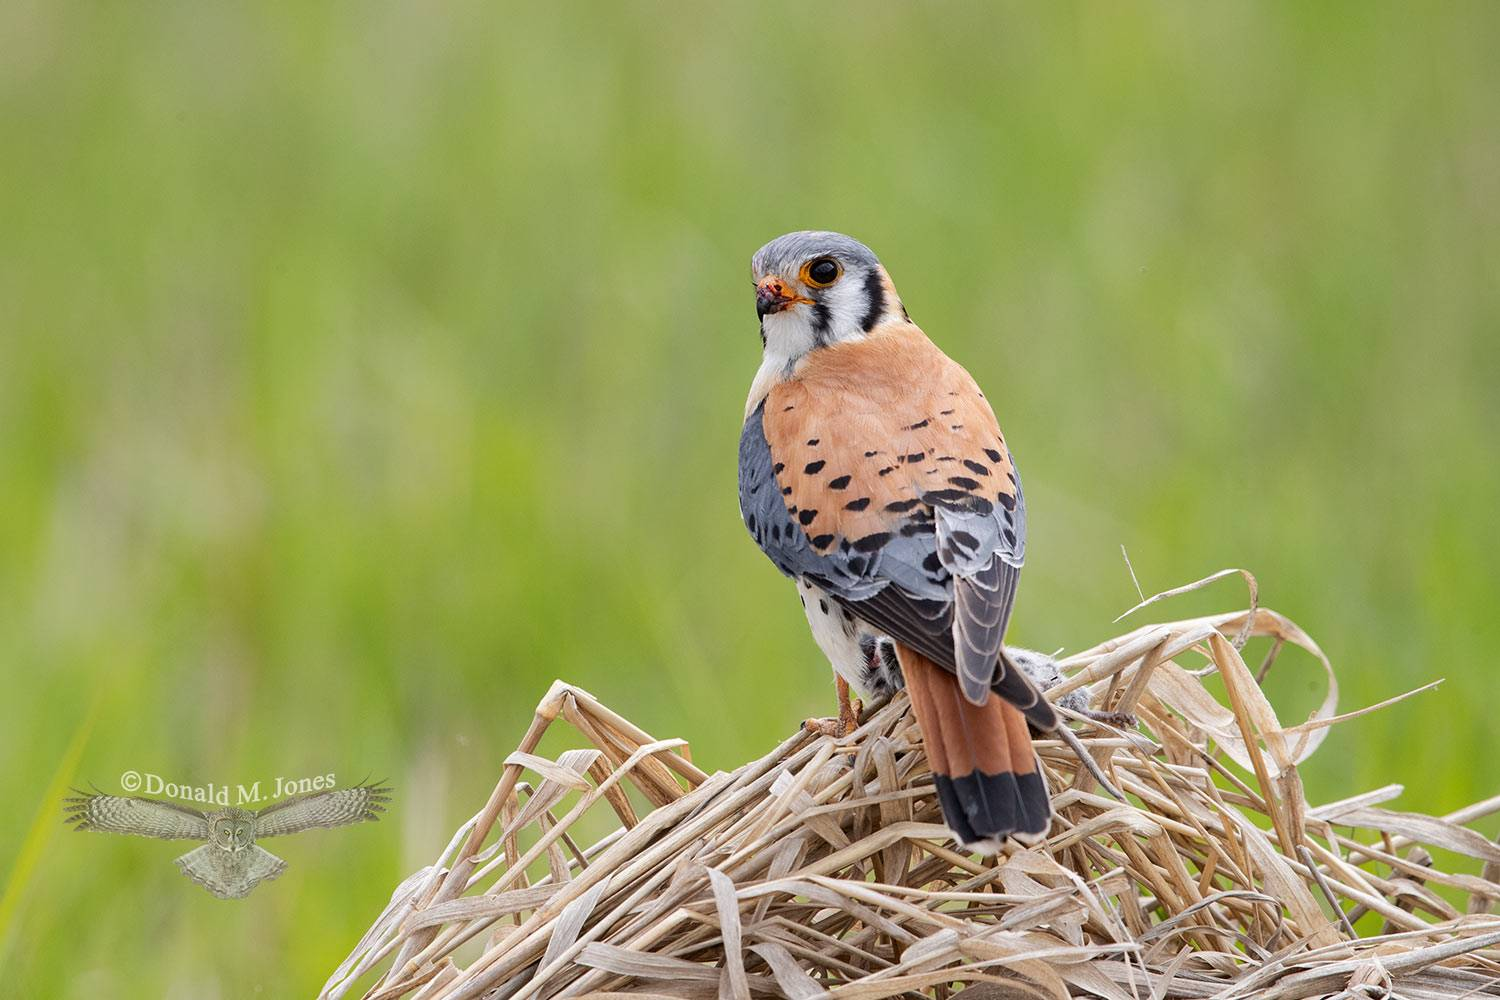 May 4 American Kestrel with vole